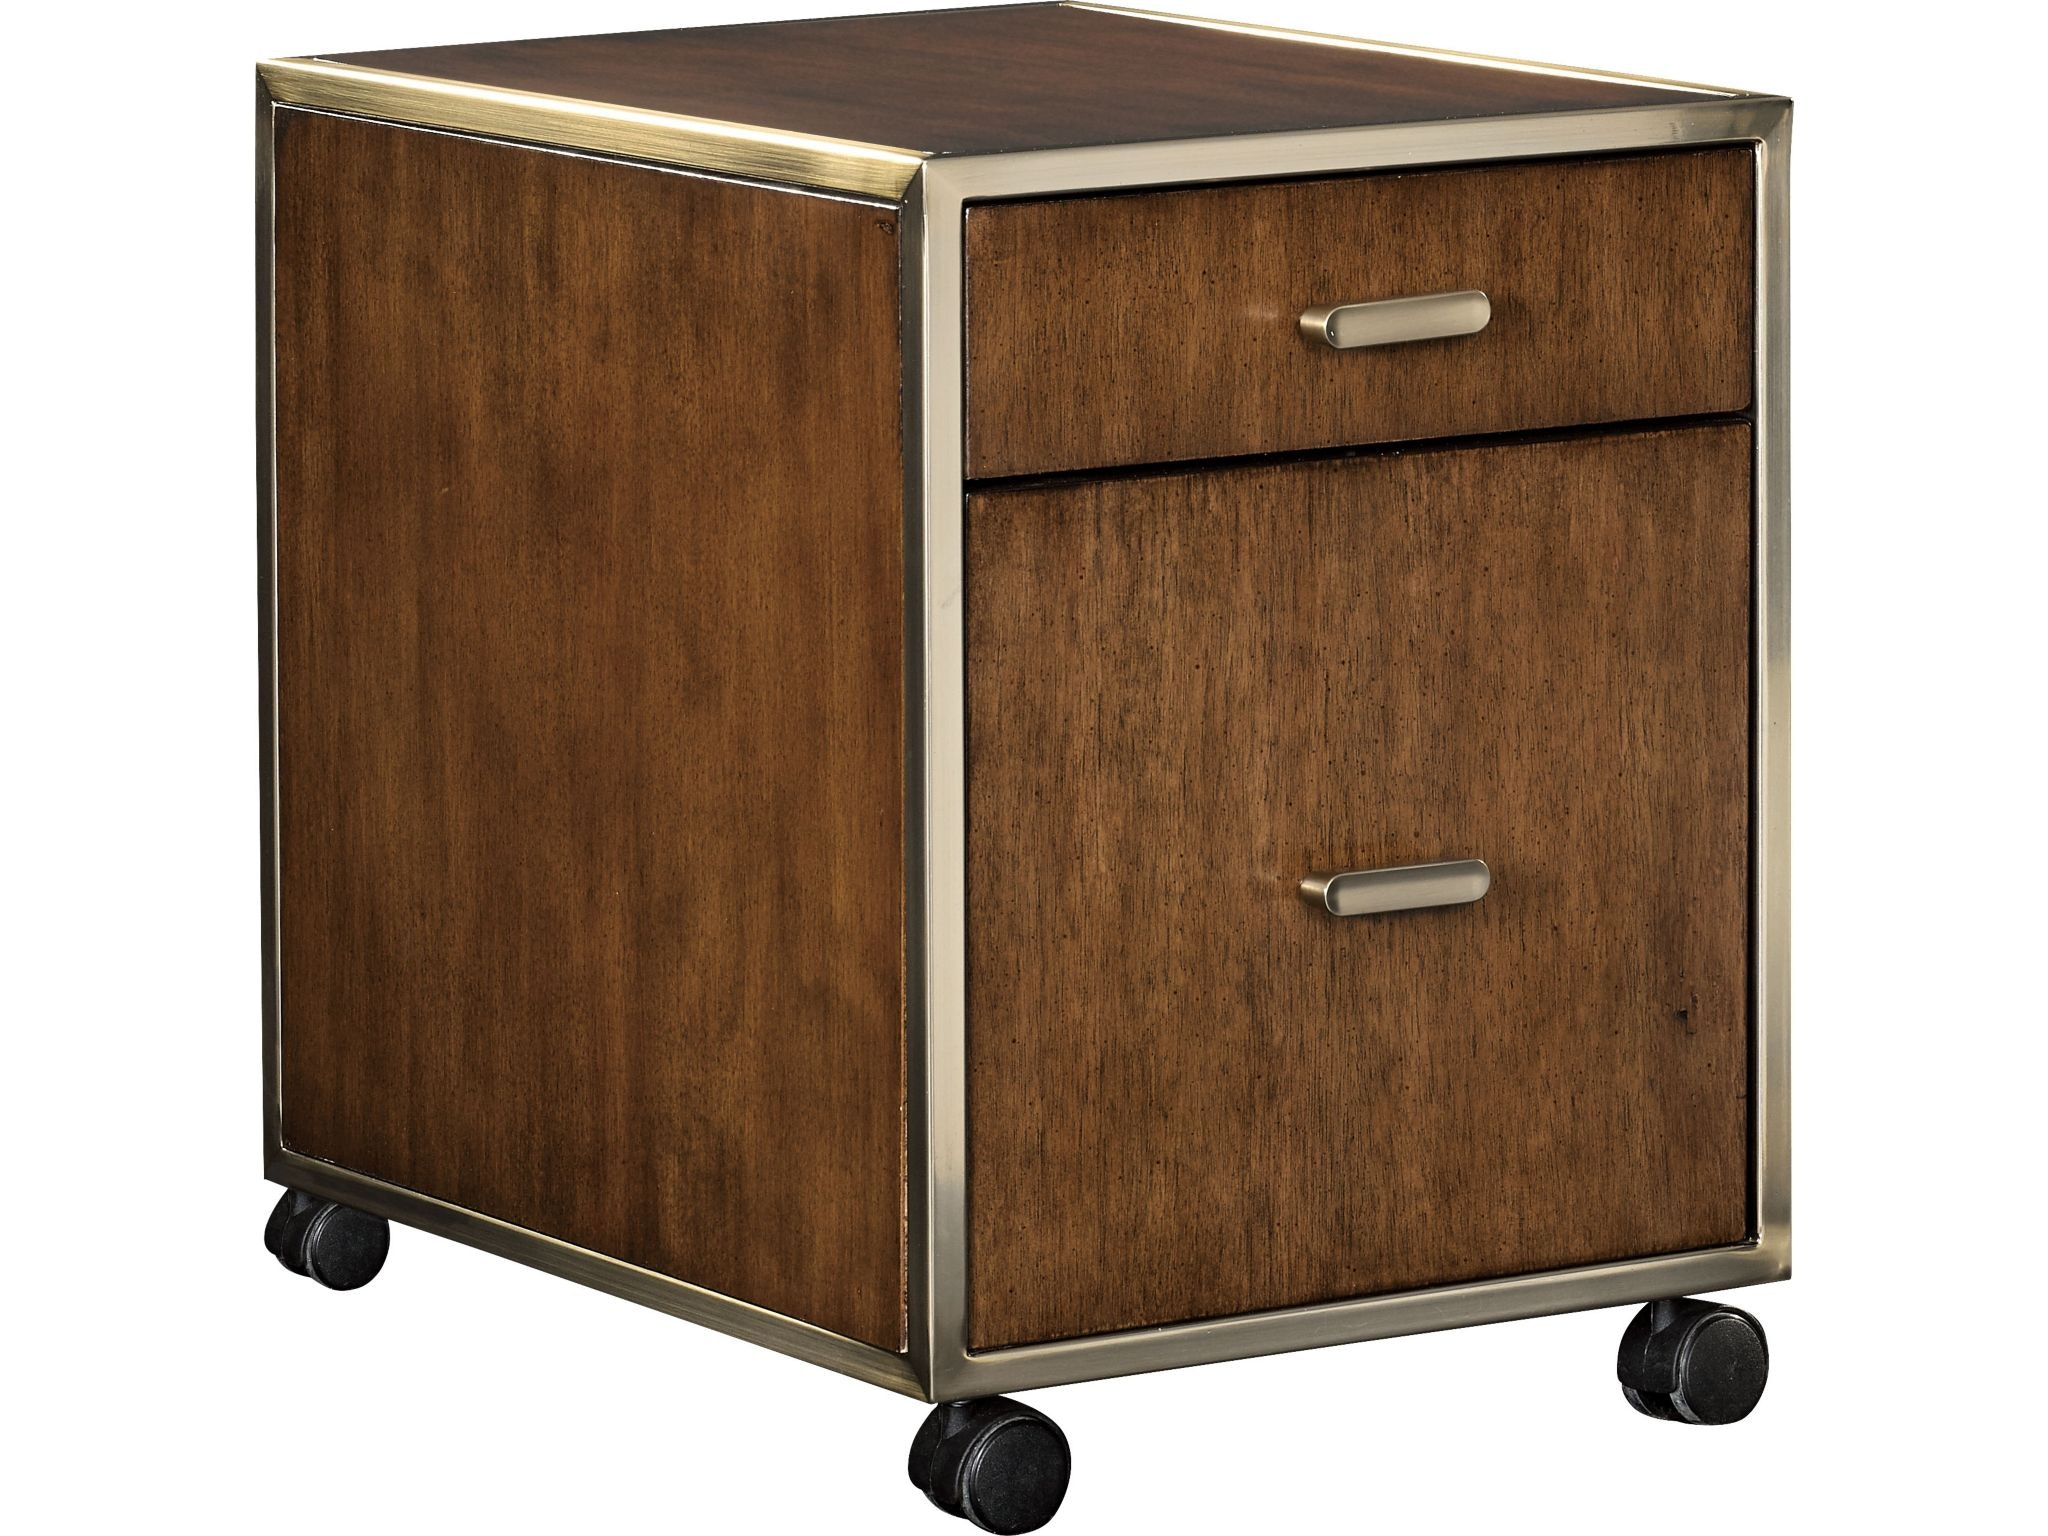 Thomasville Home Office Retrospect Hillier Mobile File Storage 85431 639 At  West Coast Living